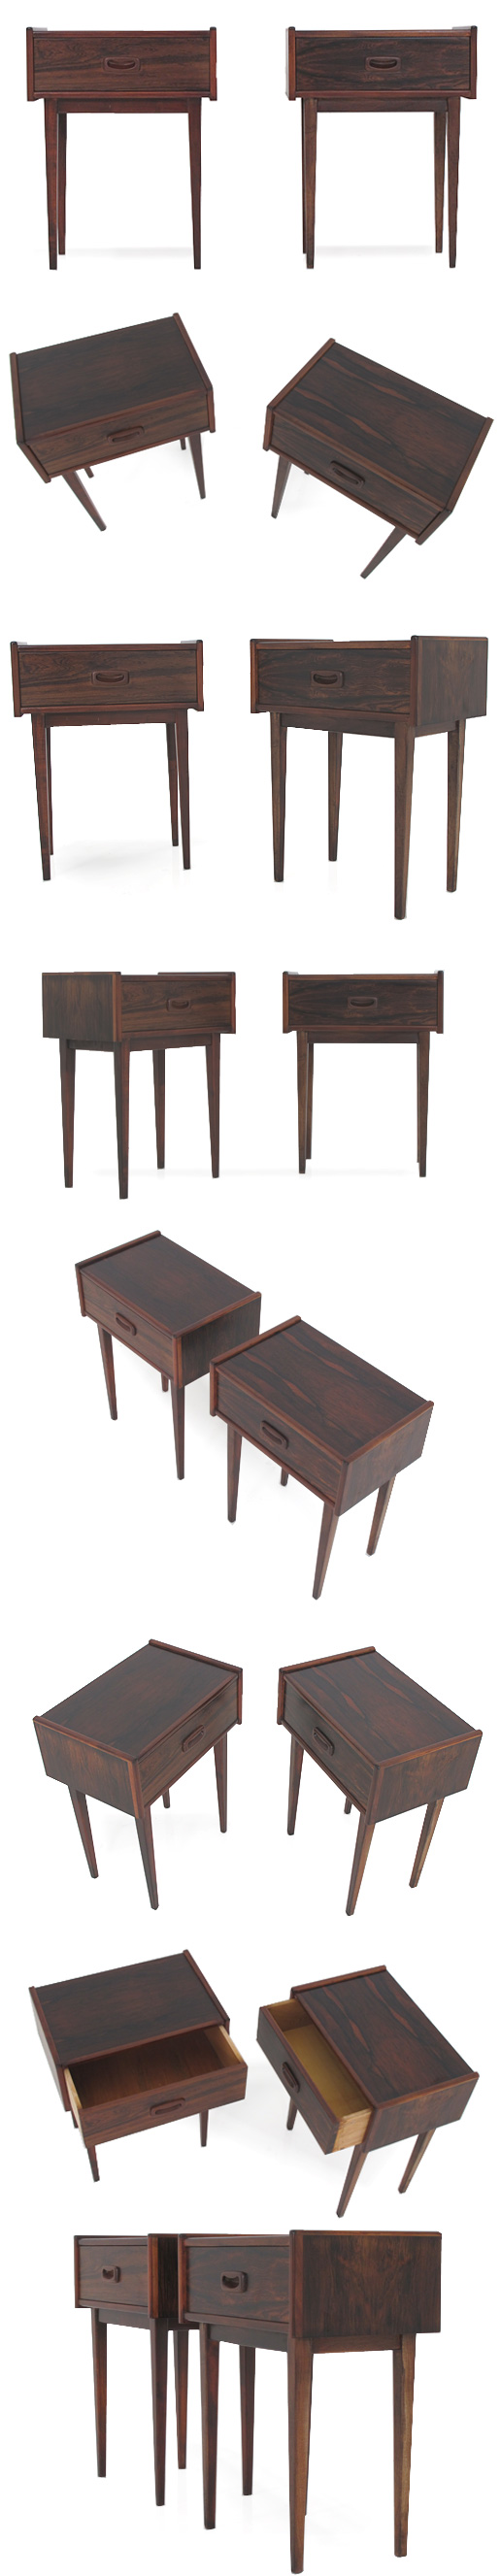 A PAIR OF ROSEWOOD BEDSIDE CABINETS